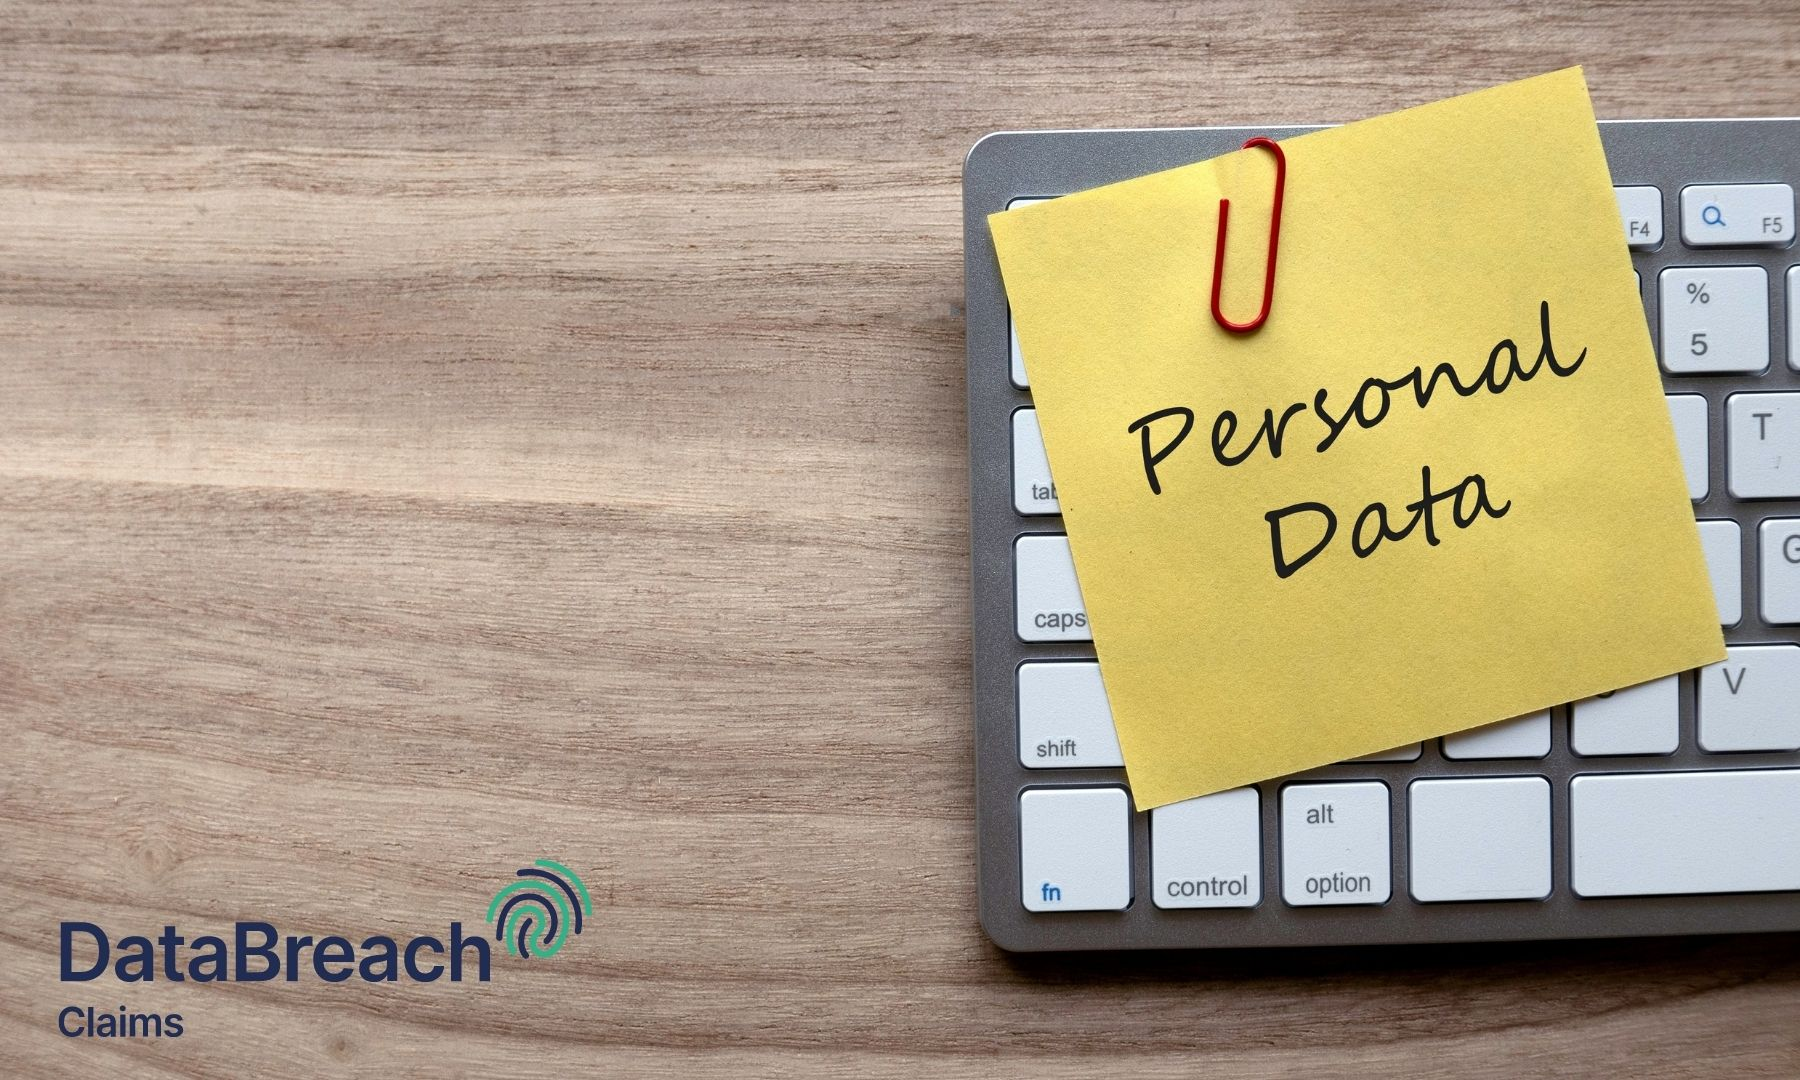 What Should I Do If My Personal Information Has Been Compromised By a Data Breach?